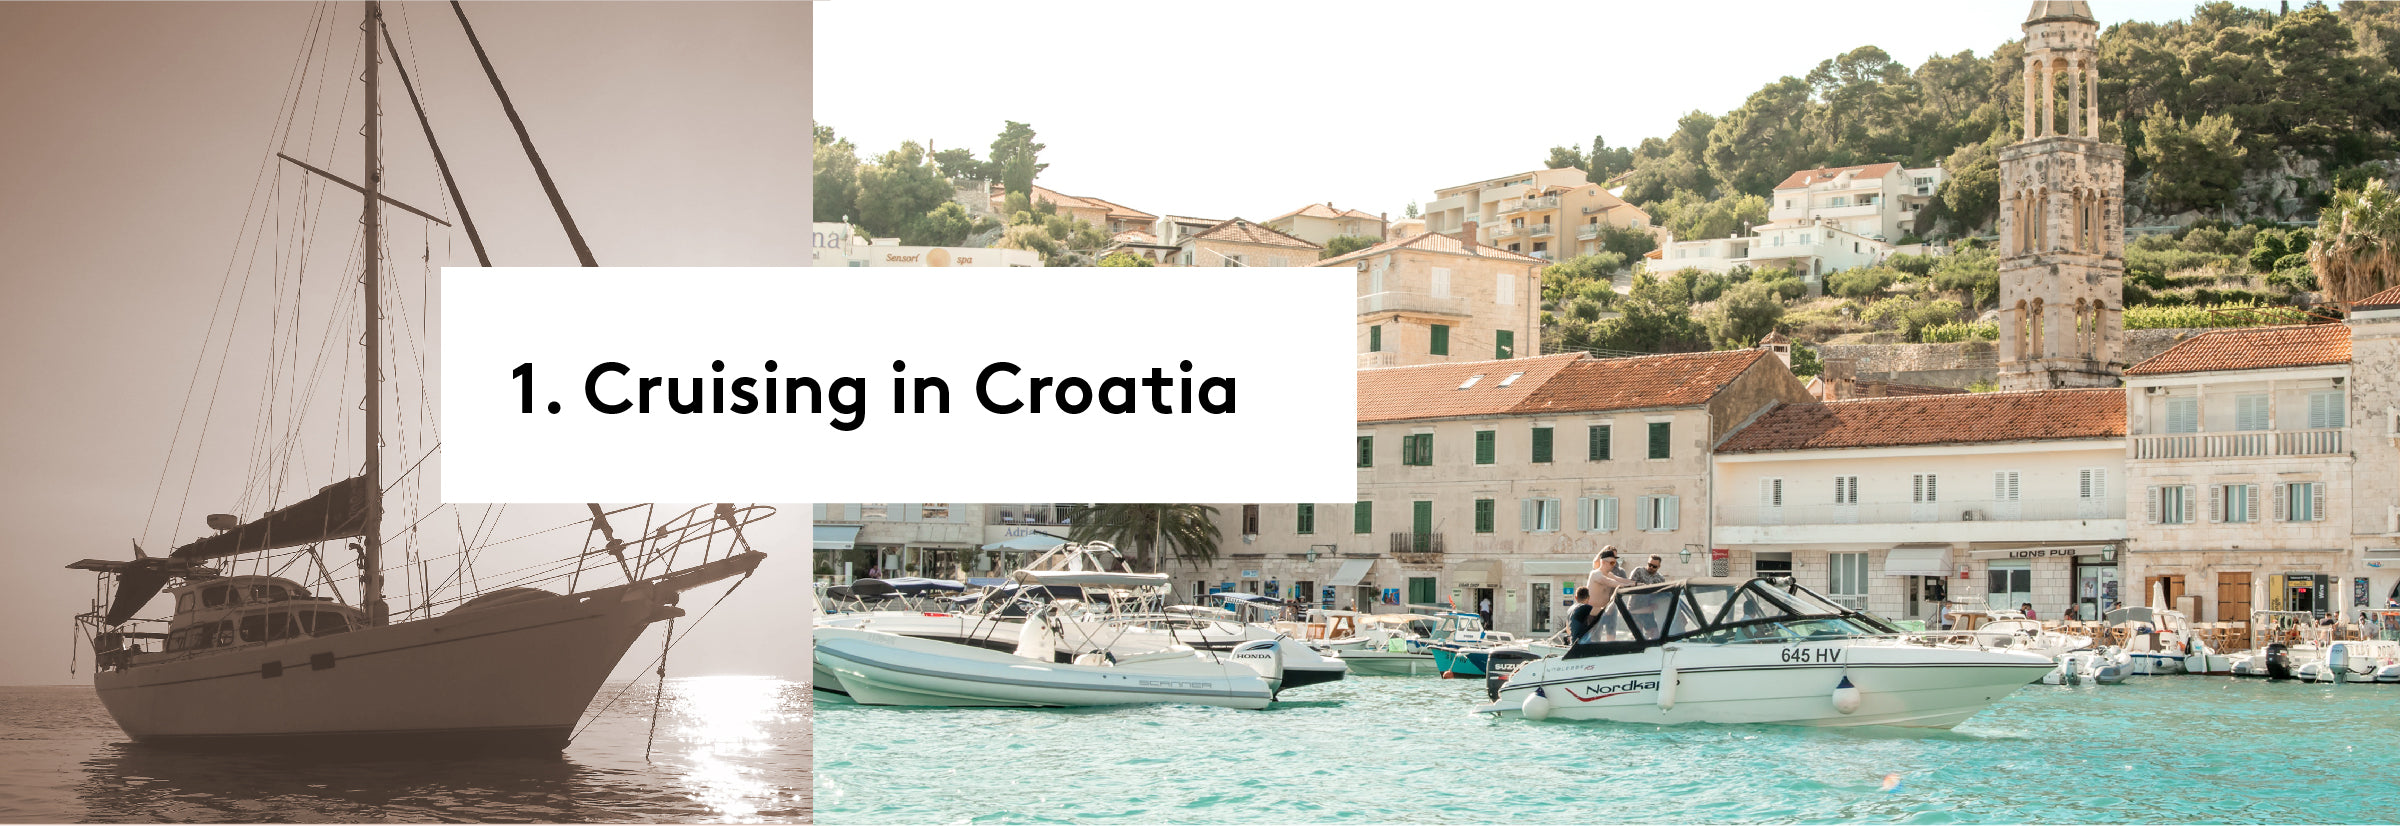 1. Cruising in Croatia